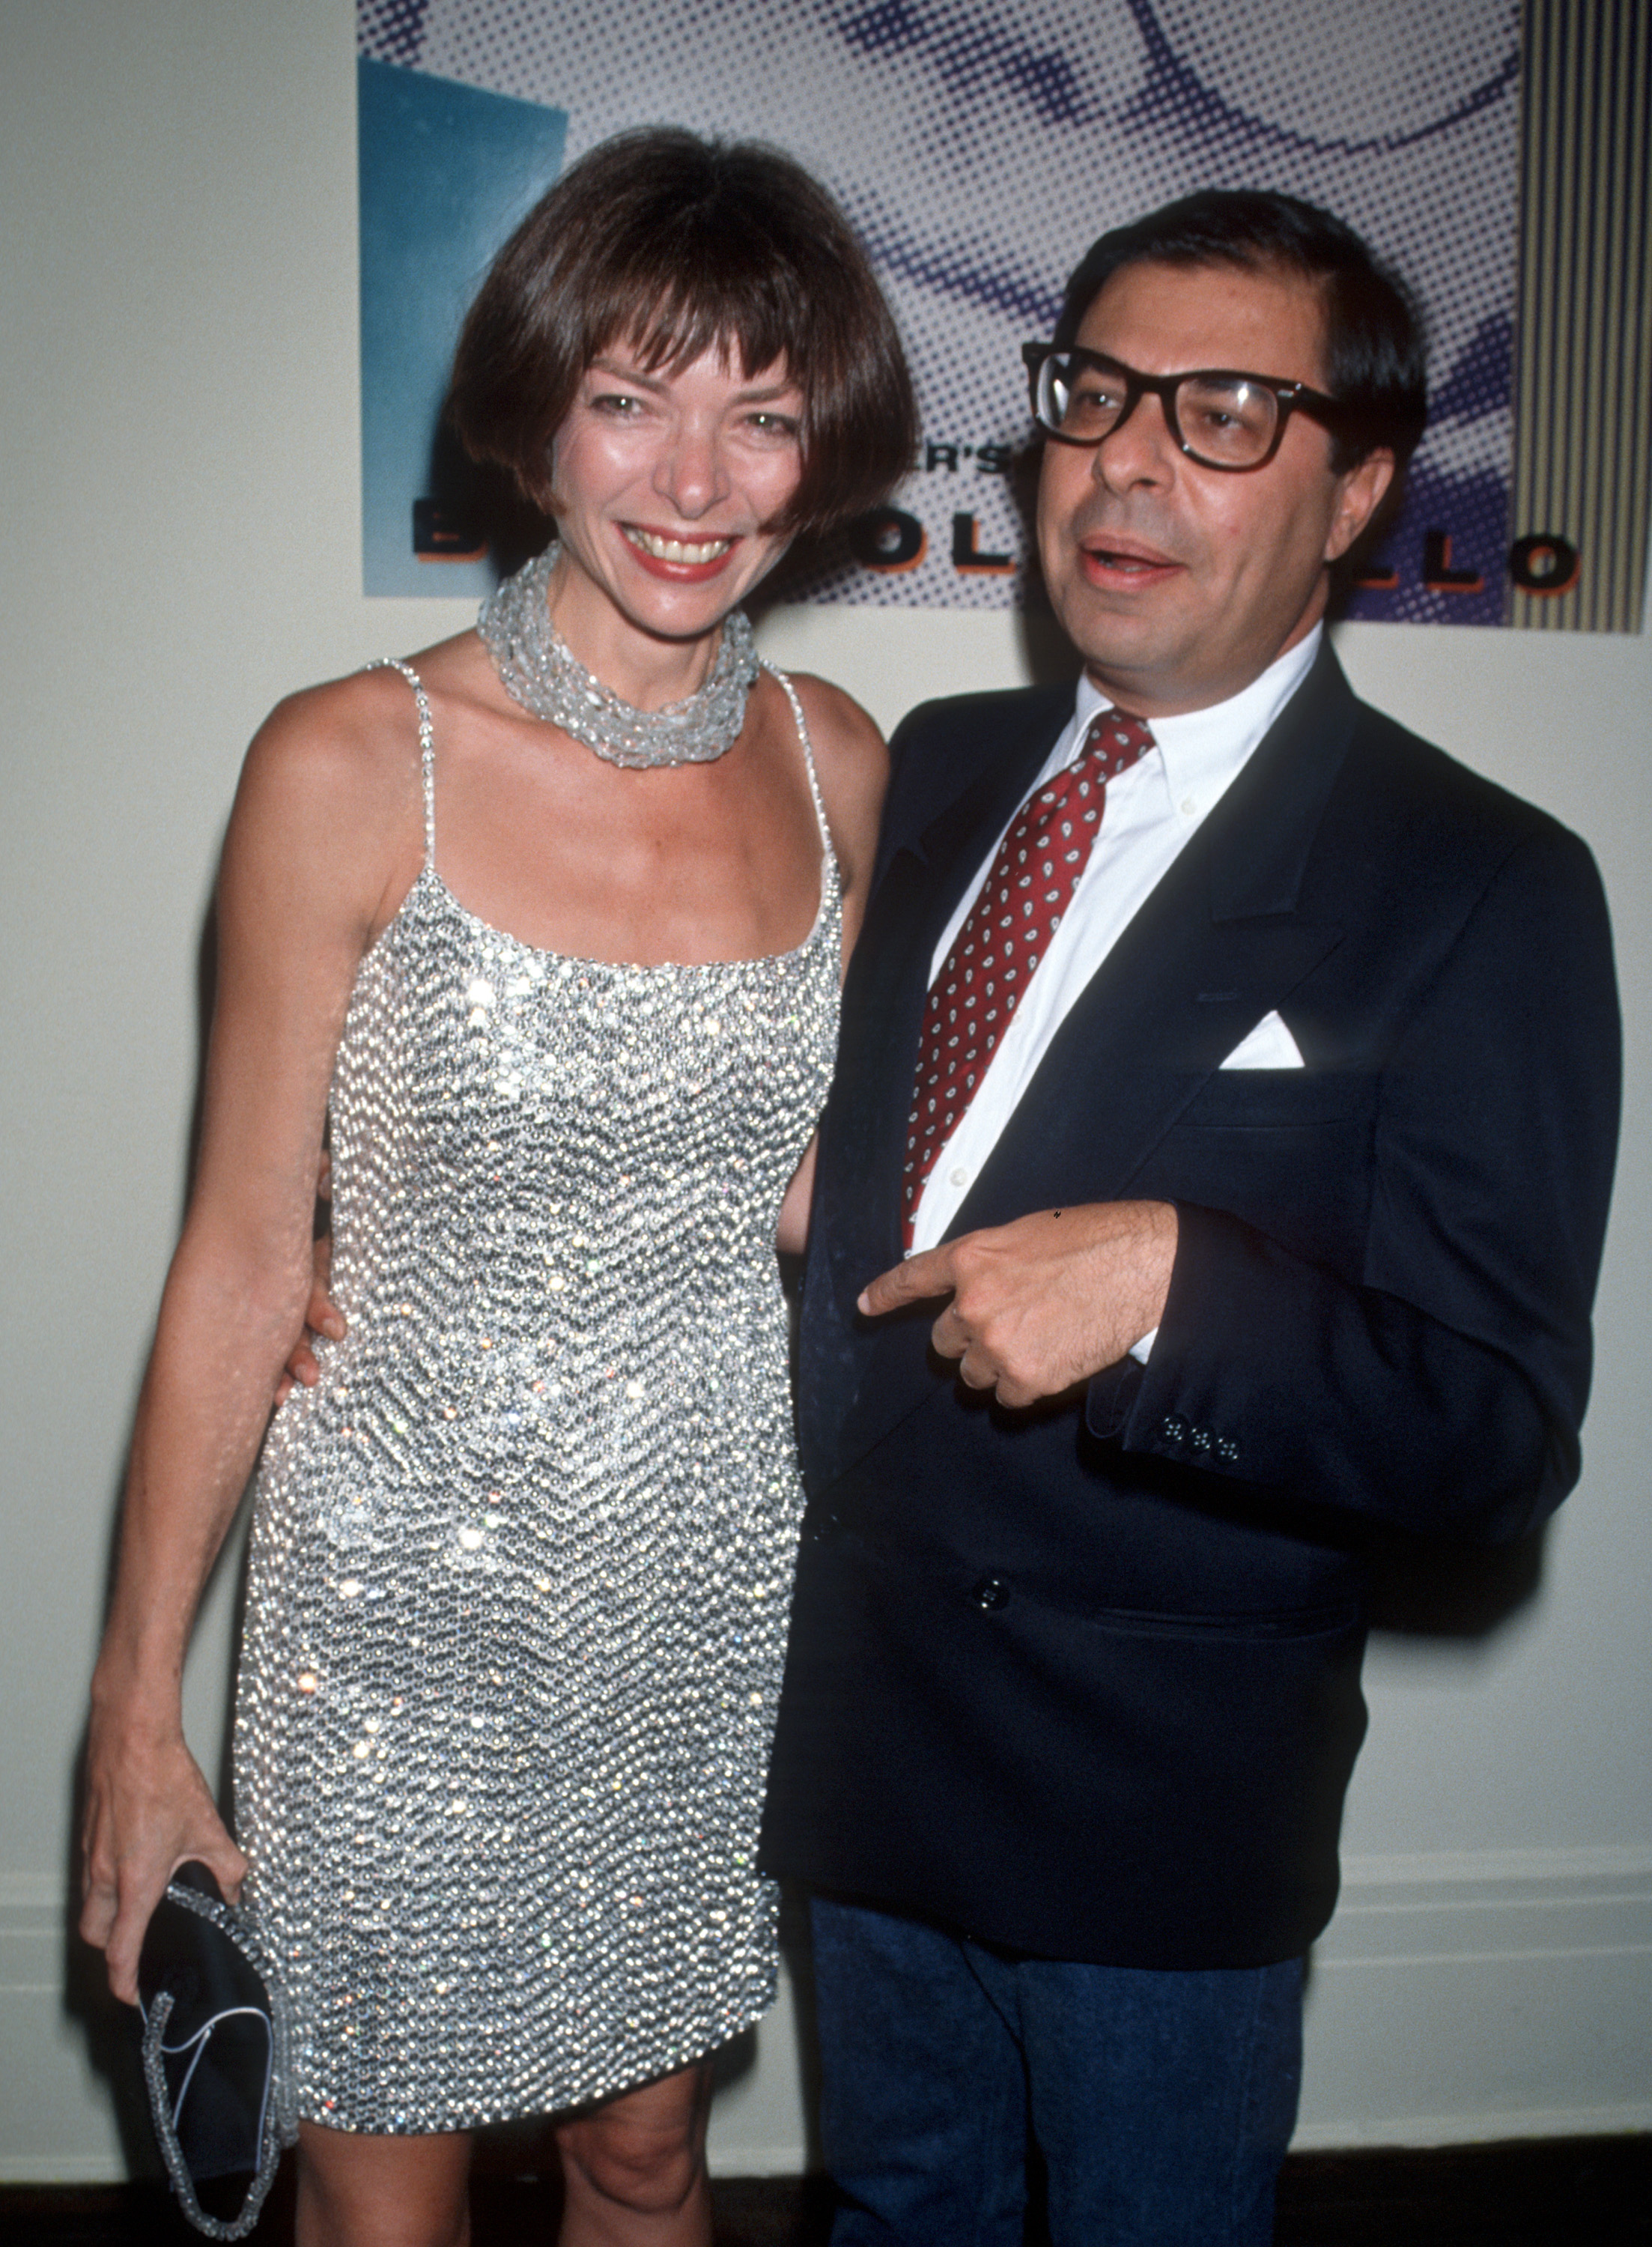 1990-Holy-Terror-Andy-Warhol-Close-Up-Book-Party-Anna-Wintour-Bob-Colacello.jpg